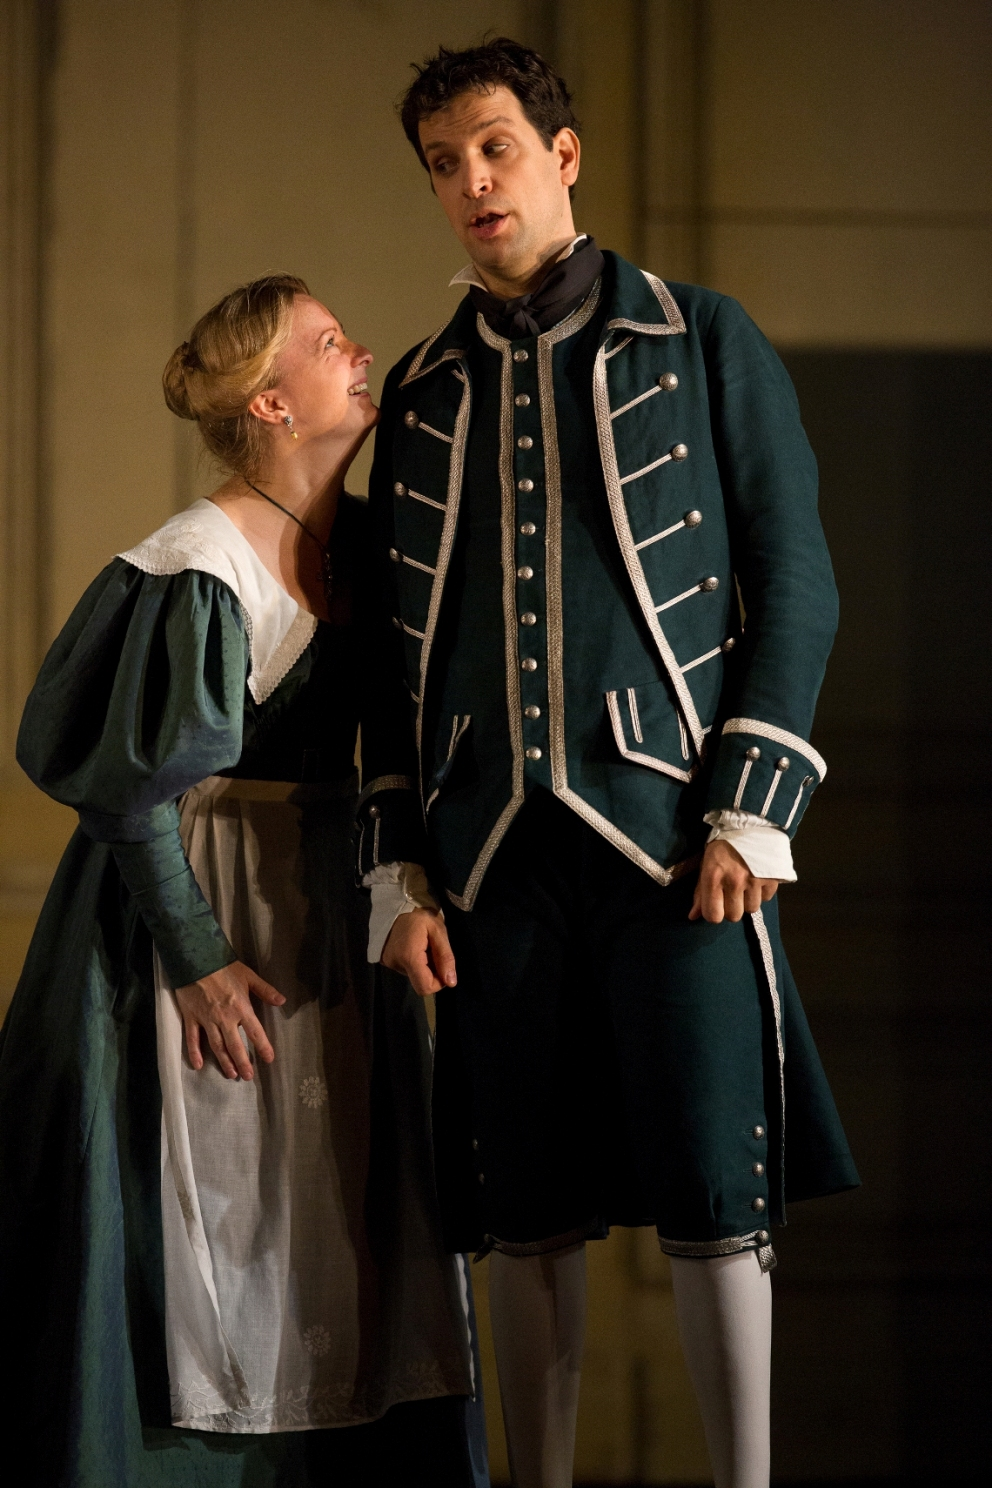 Lucy Crowe and Luca Pisaroni in the Royal Opera Figaro